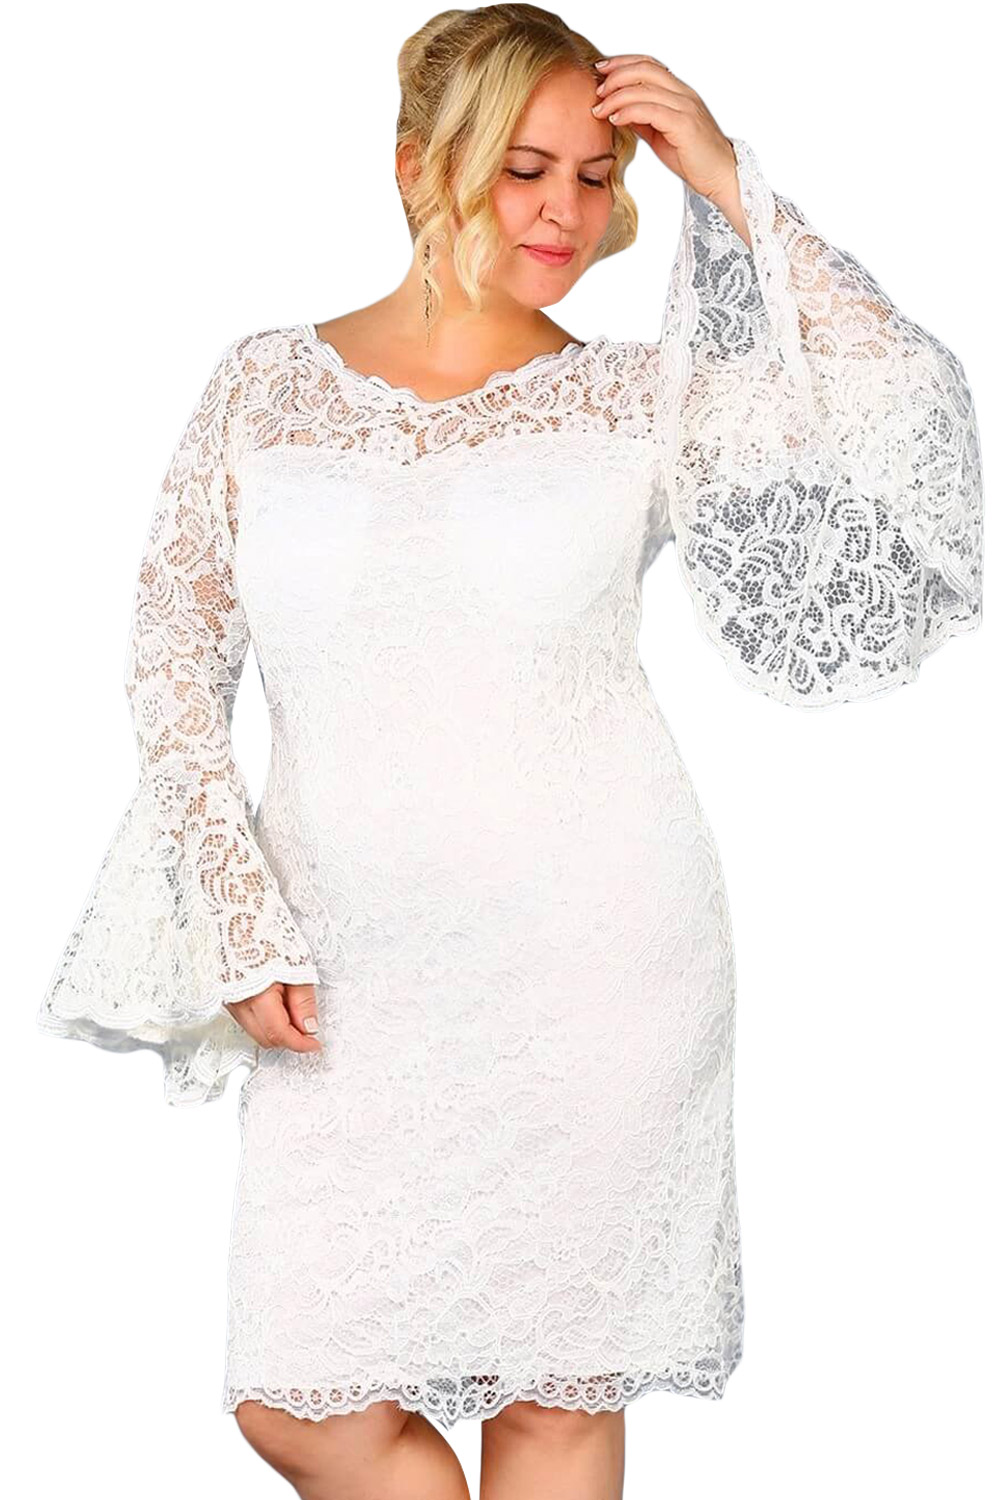 White Plus Size Flared Sleeve Lace Dress